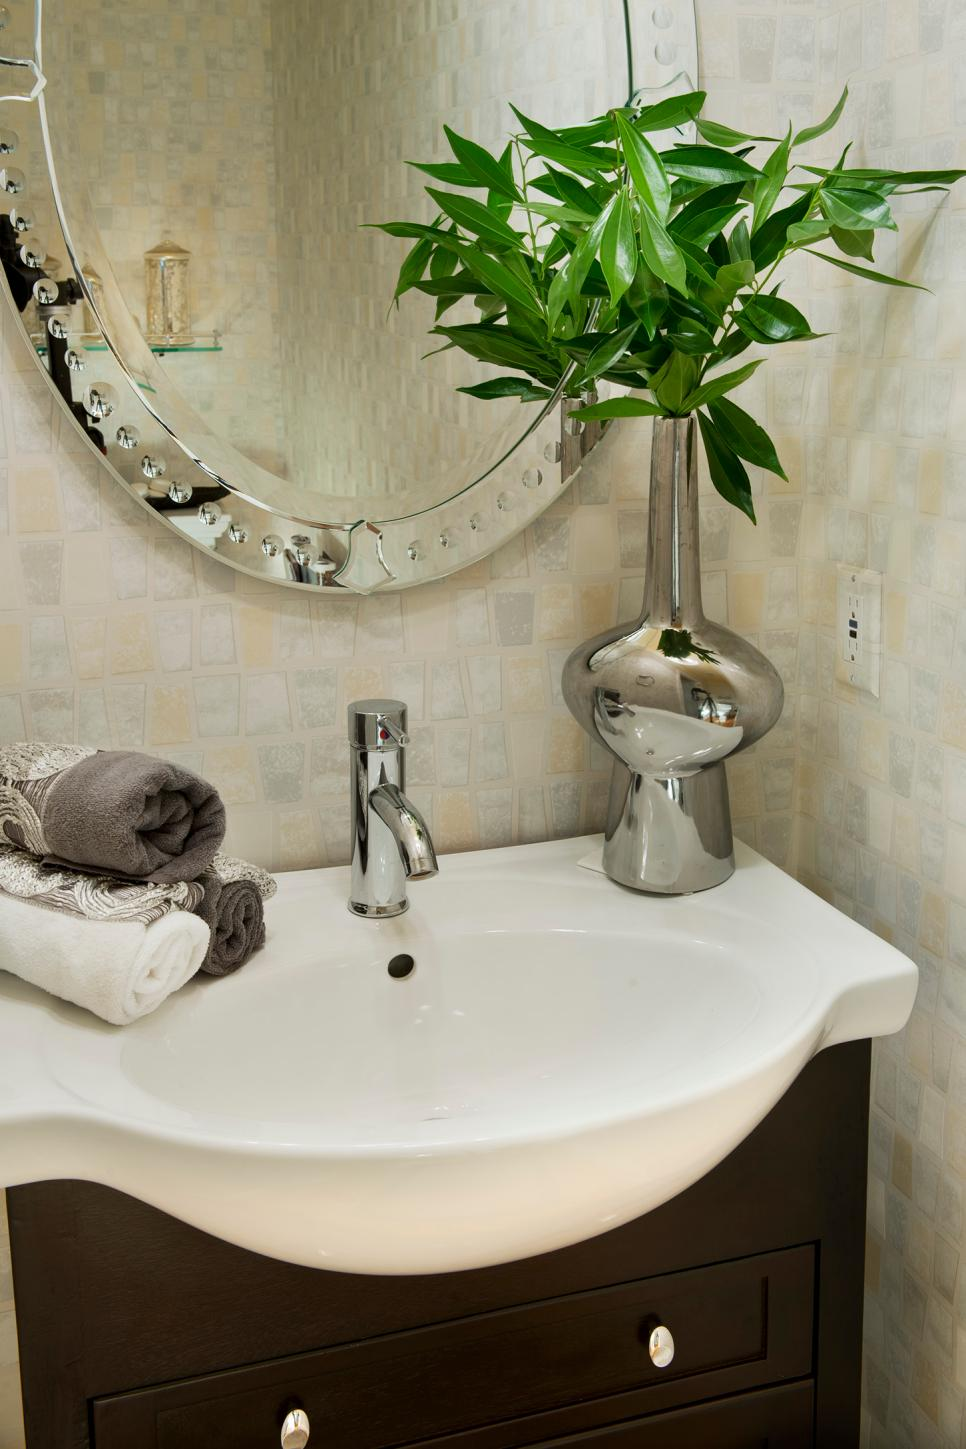 cheap bathroom remodeling ideas before and after bathroom remodels on a budget hgtv 9513